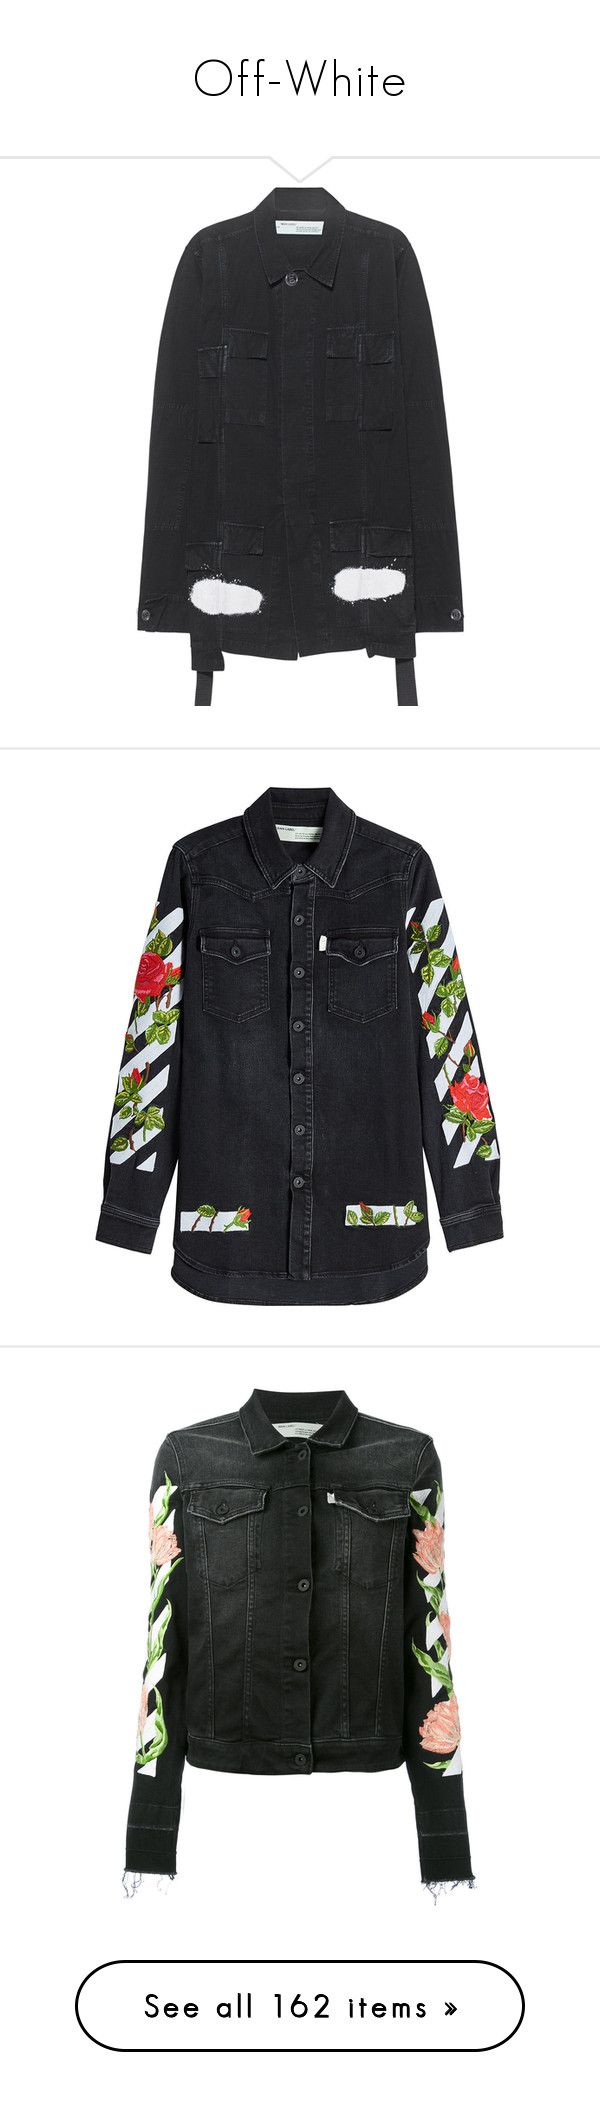 """""""Off-White"""" by truedisaster ❤ liked on Polyvore featuring men's fashion, men's clothing, men's outerwear, men's jackets, mens cotton military jacket, mens cotton jacket, mens oversized denim jacket, mens leopard print jacket, mens cotton field jacket and outerwear"""